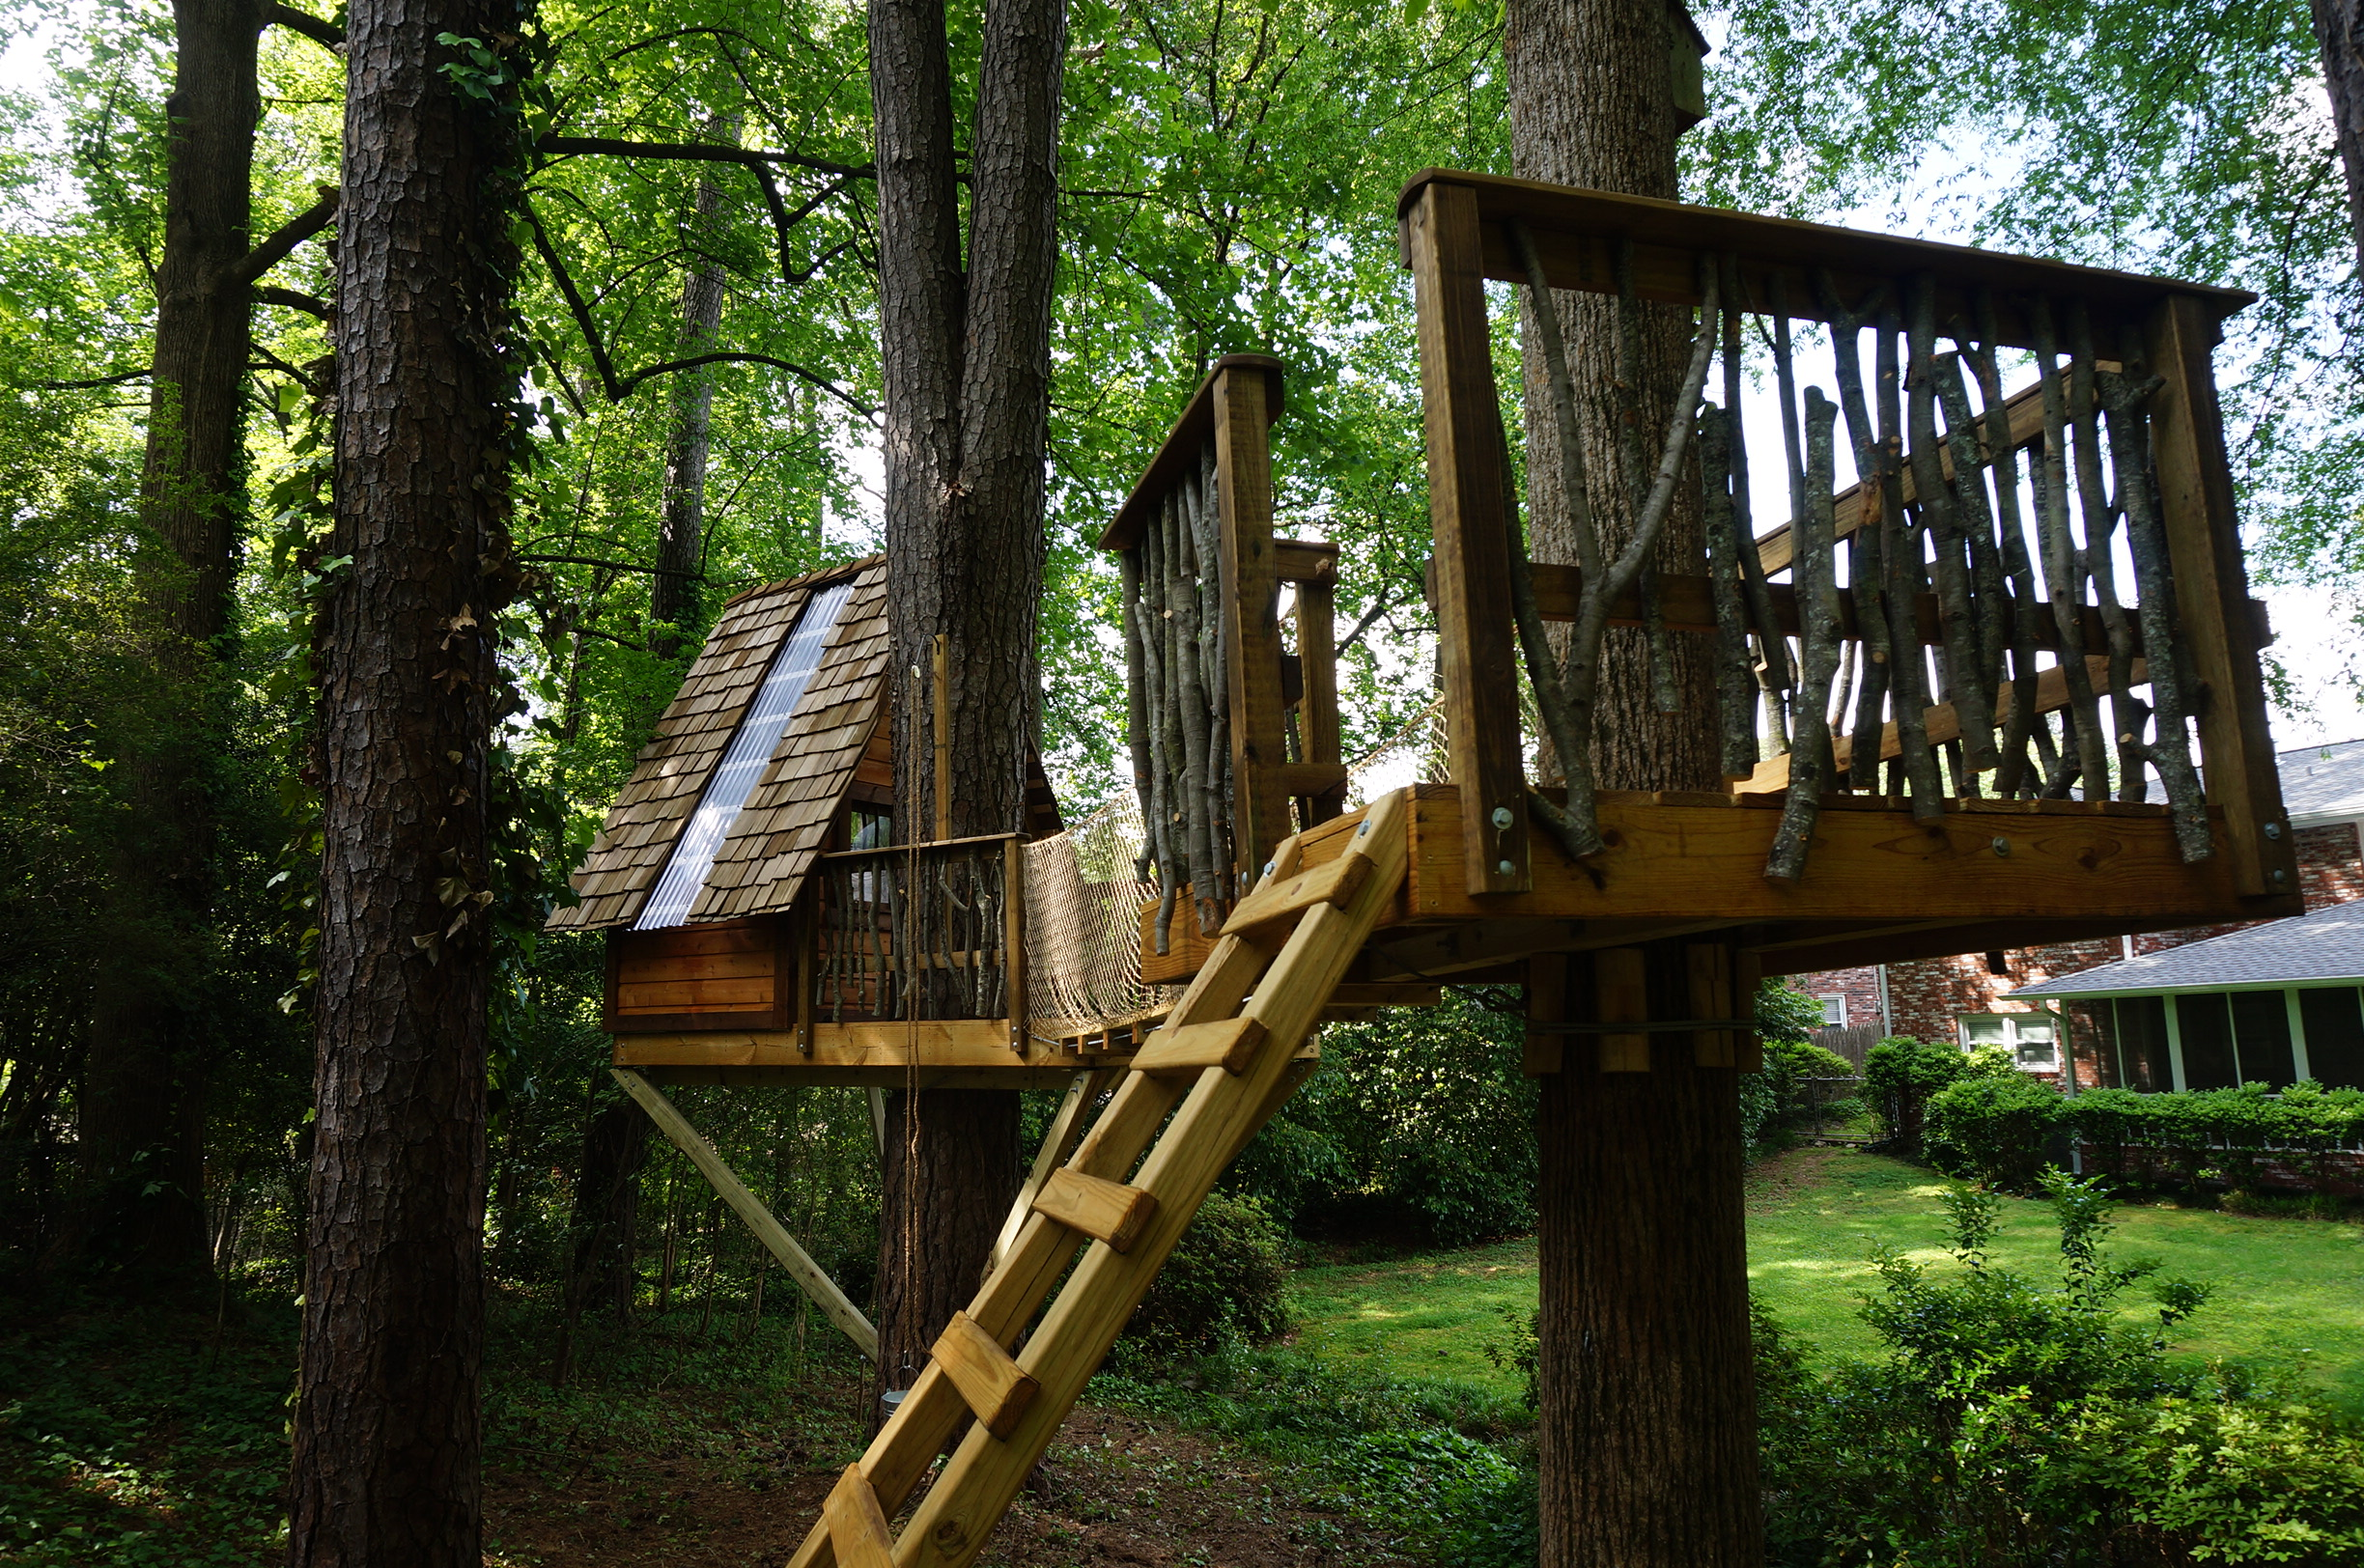 "<strong>Gnome's Treehouse</strong><a href=""/new-gallery-96"">Click Here For More Pictures »</a>"